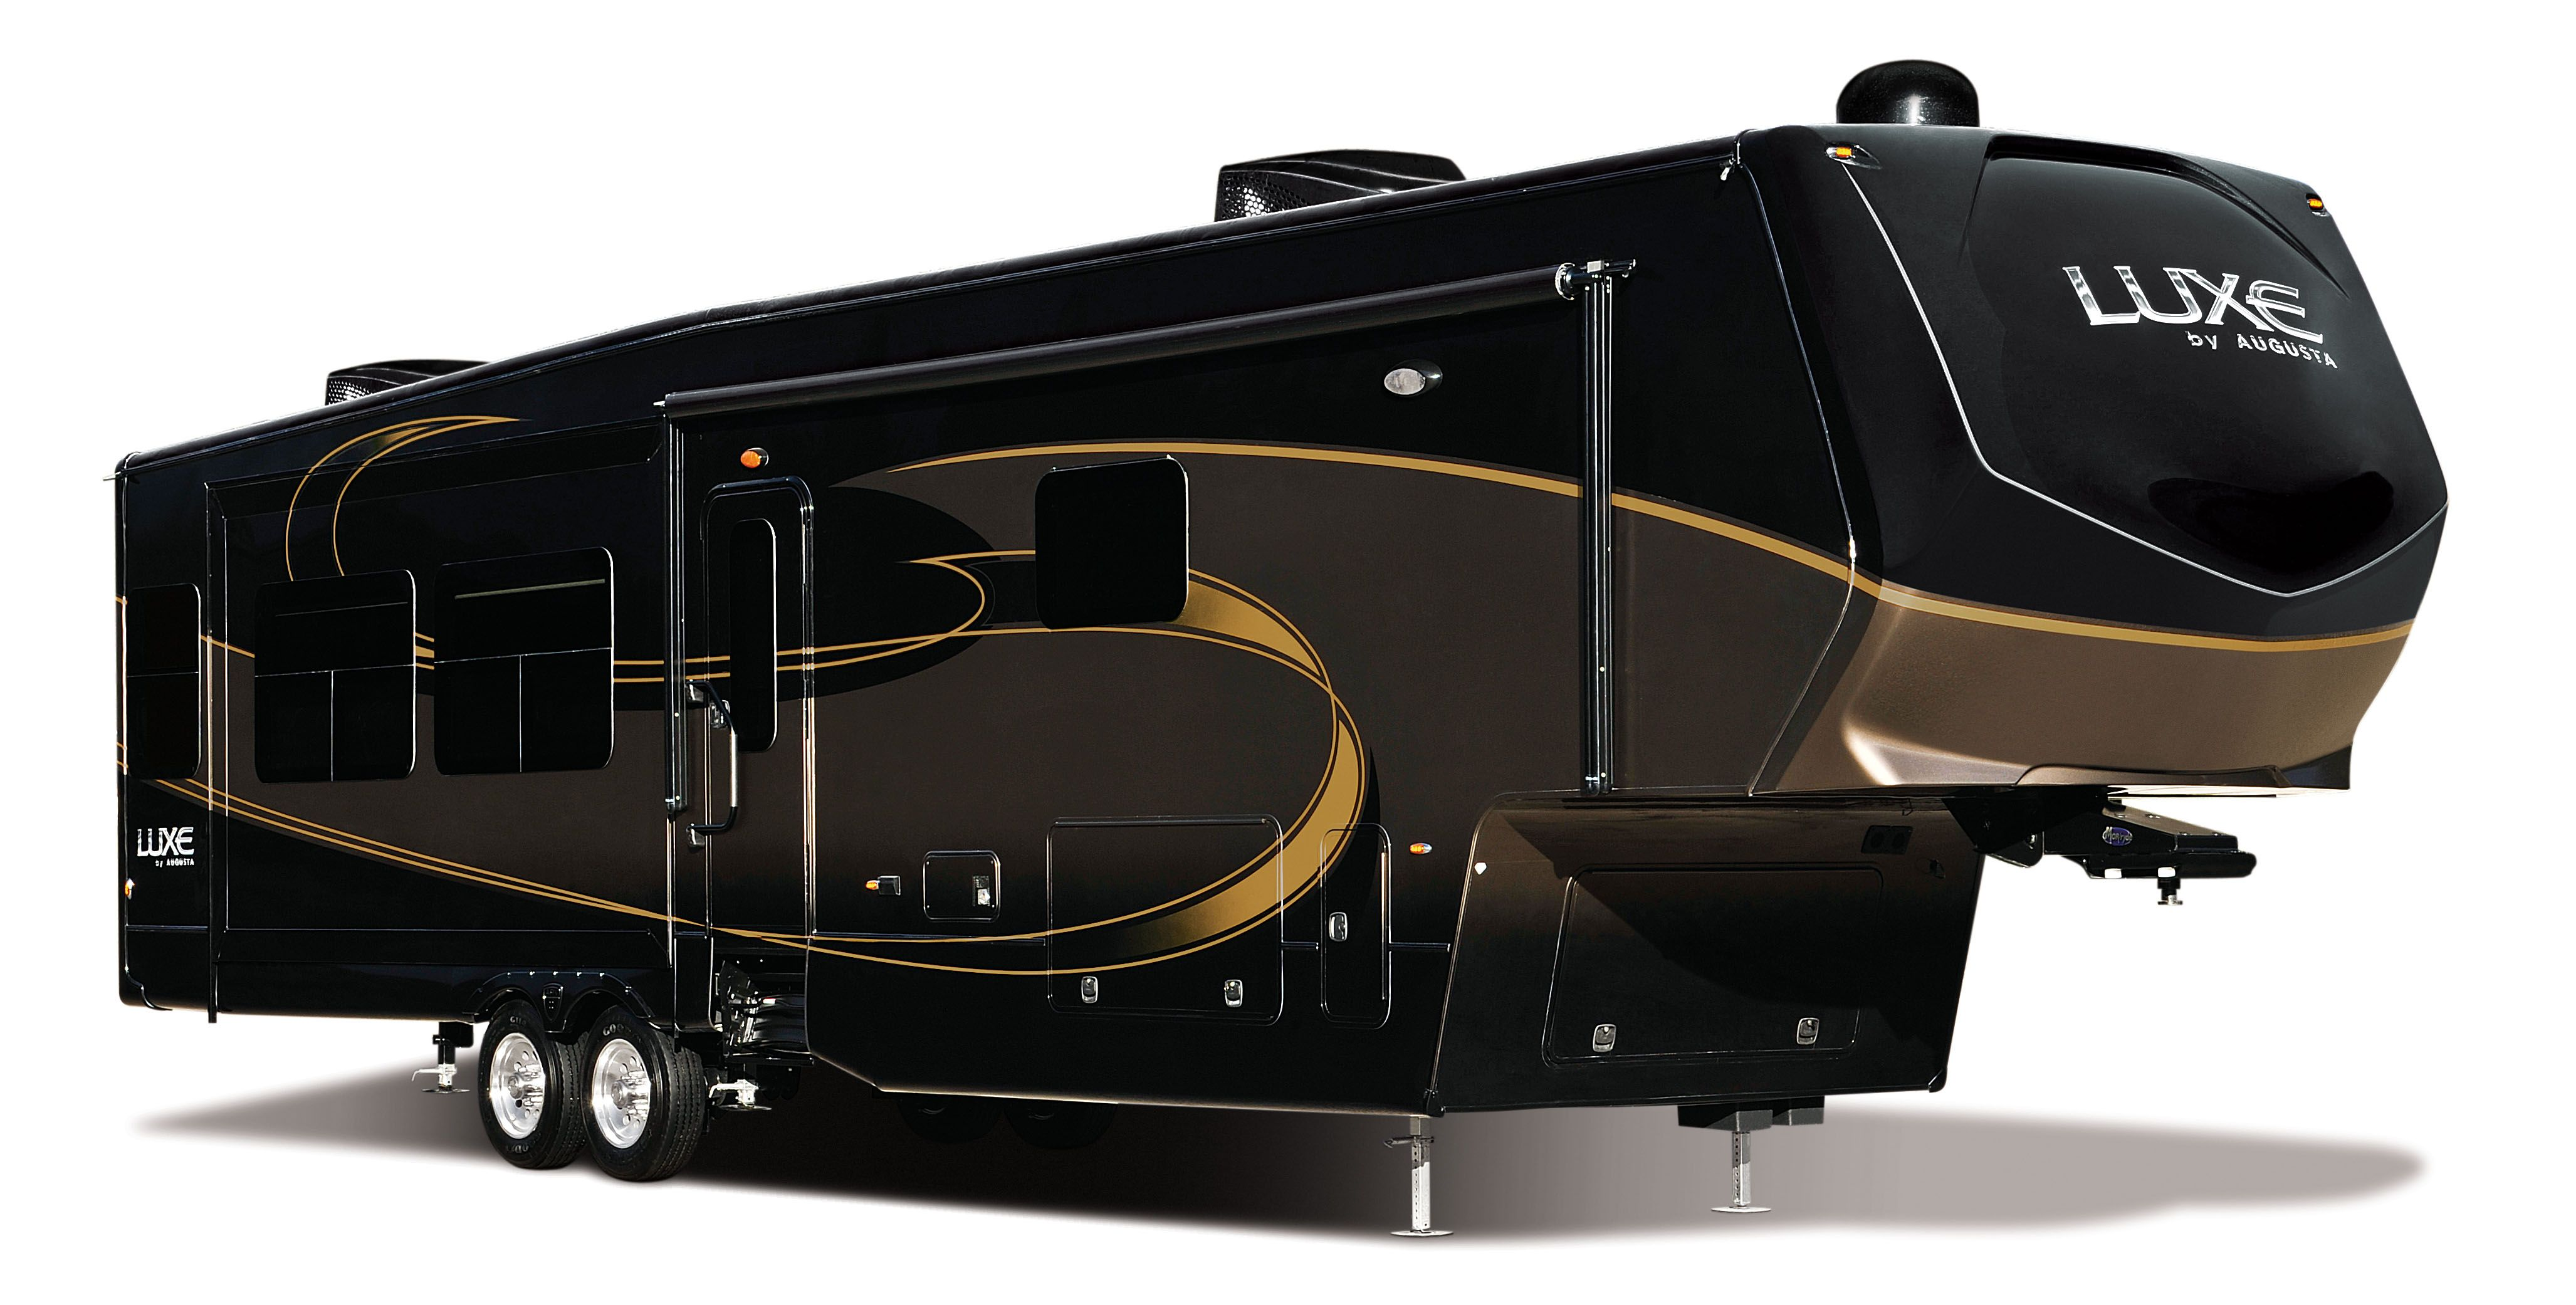 Luxury Rvs Augusta To Debut Luxe Fiver At Frvta 14 Show Fifth